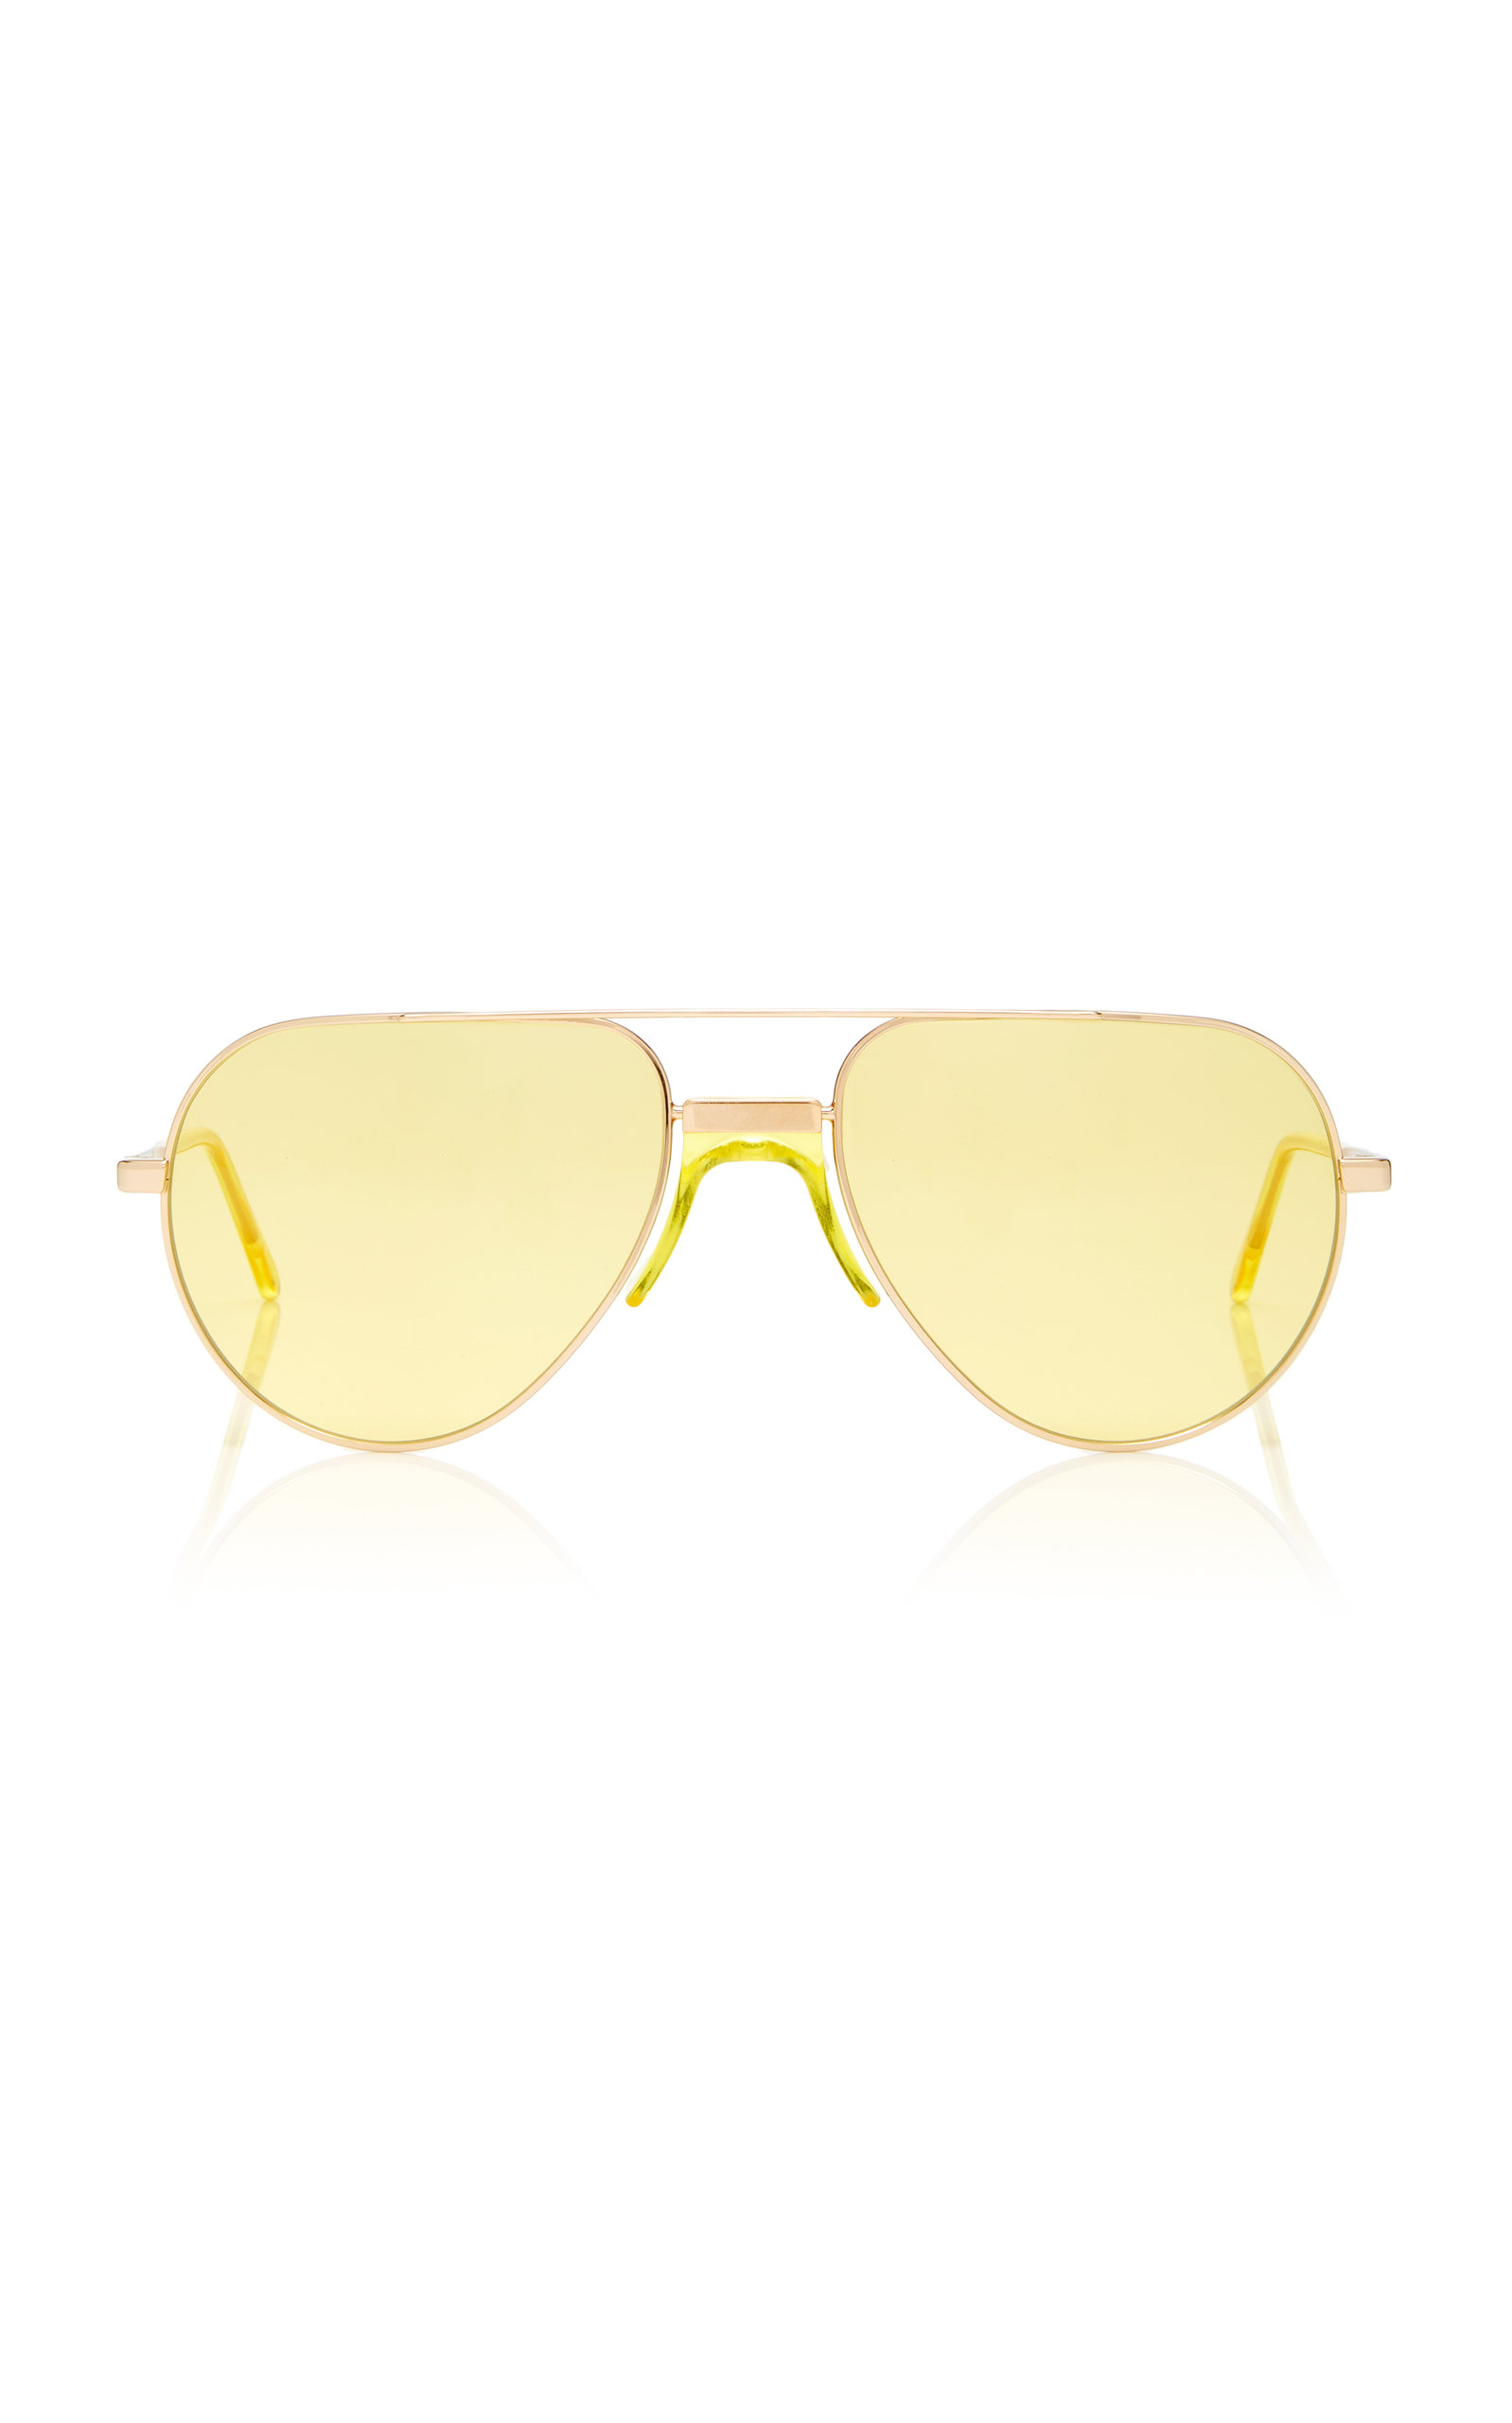 ANDY WOLF YELLOW-TINTED METAL AVIATOR SUNGLASSES